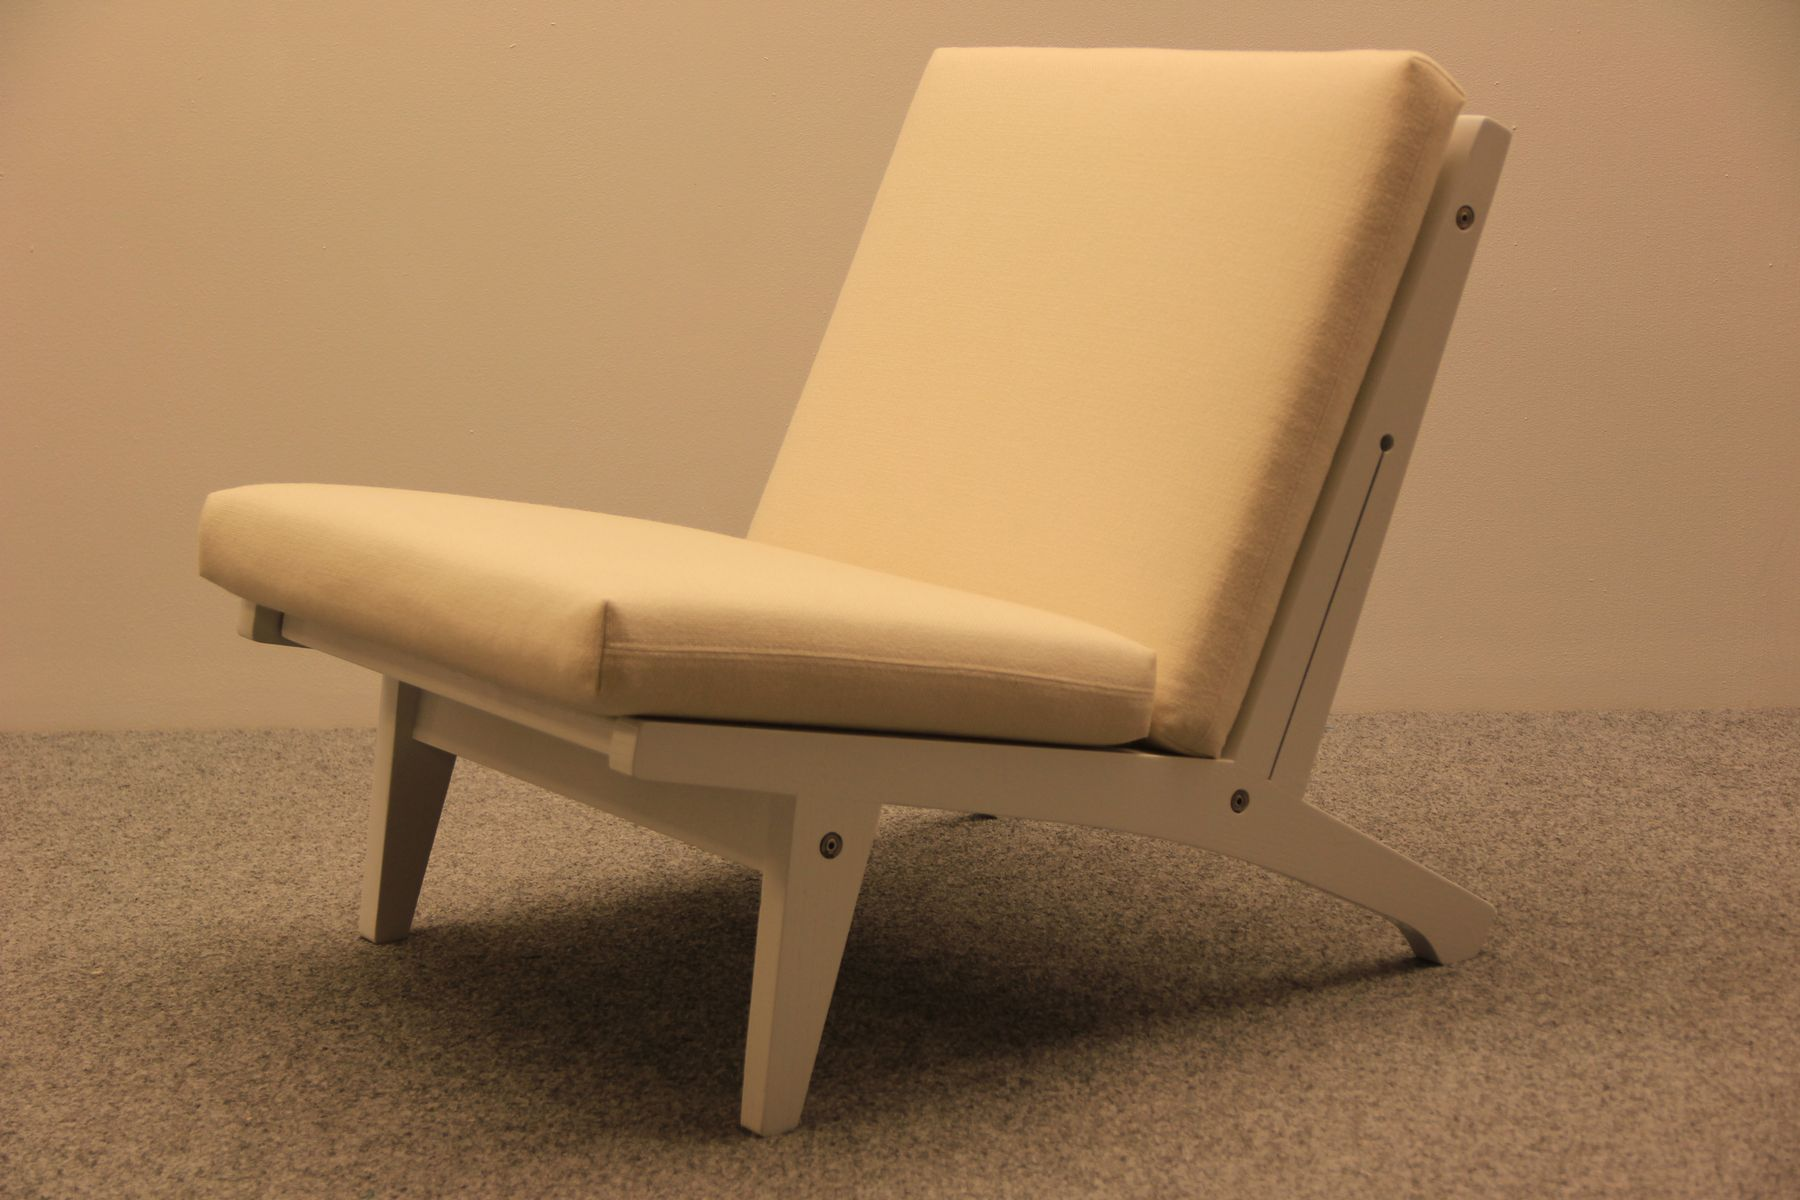 GE 370 Easy Chair by Hans J. Wegner for Getama, 1960s for sale at Pamono